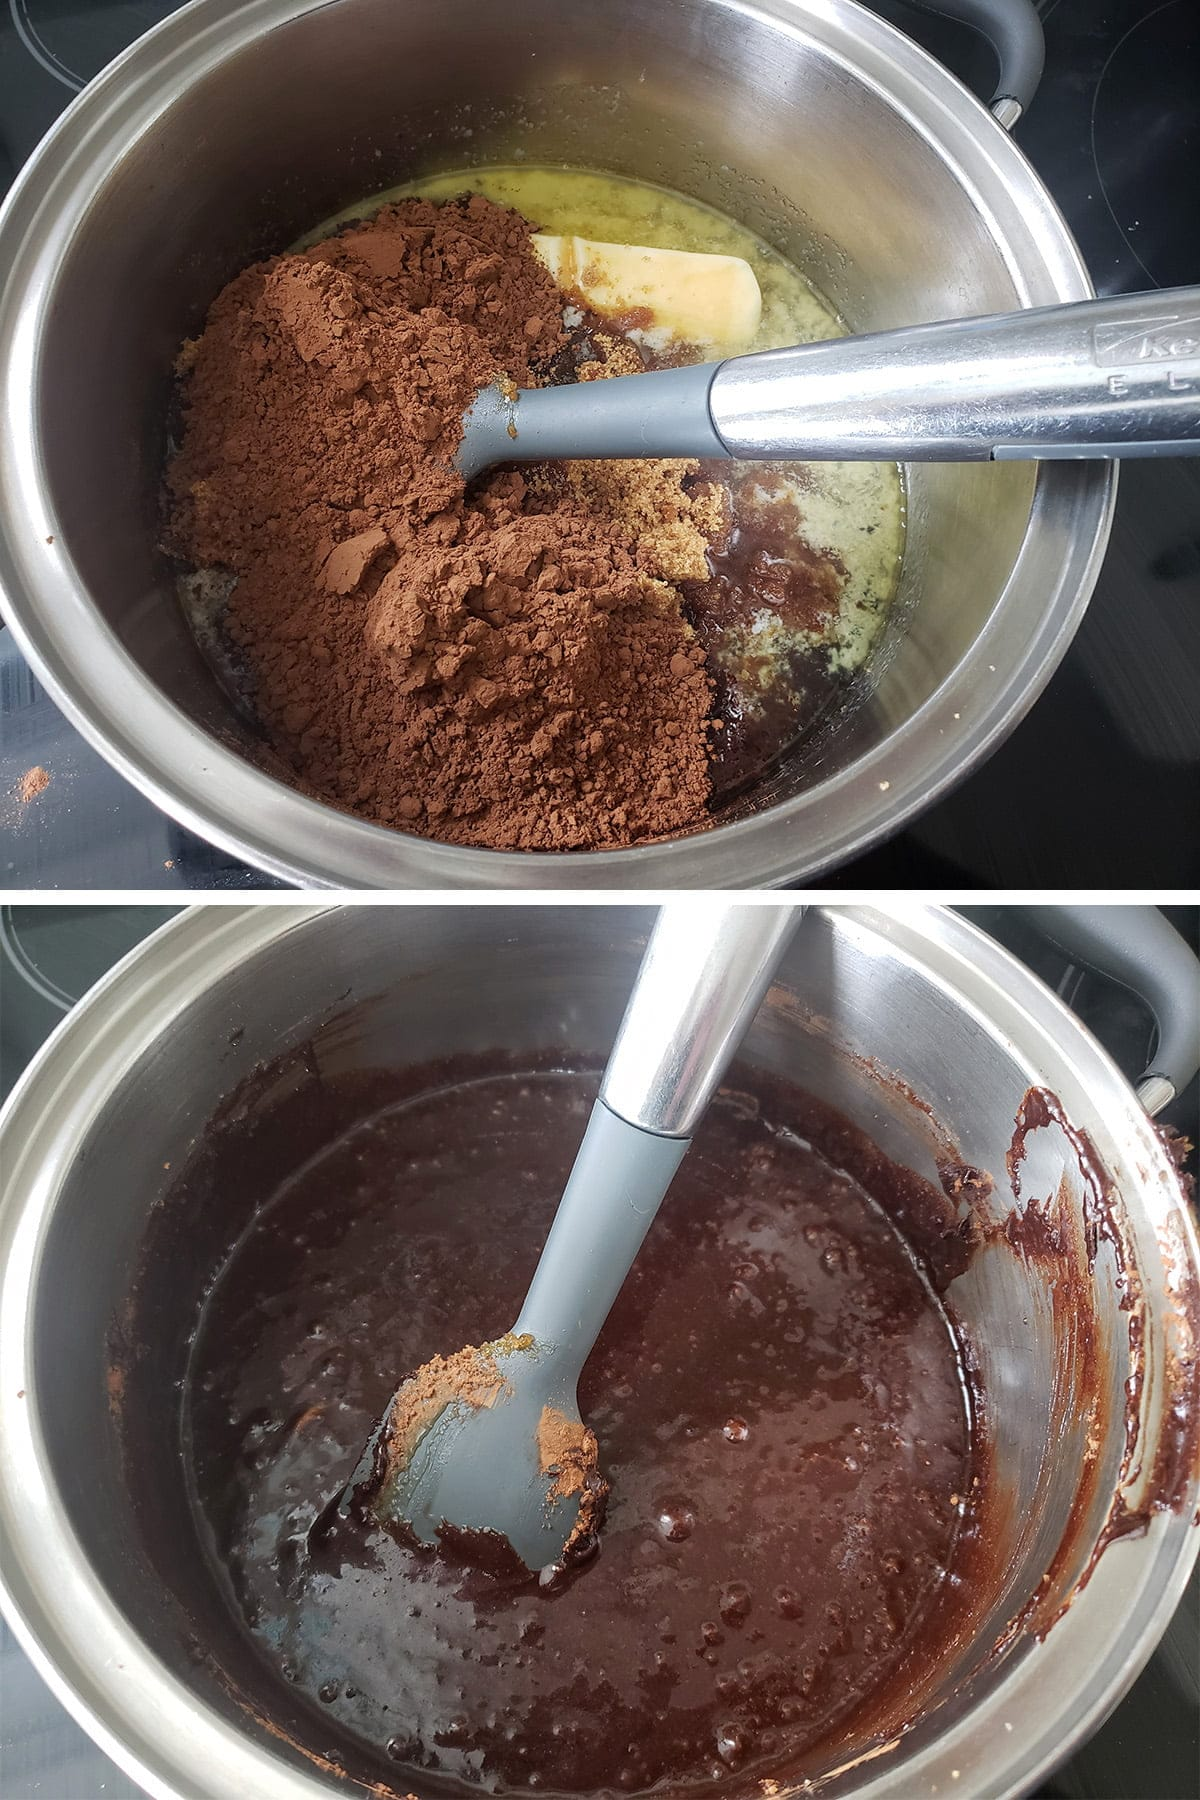 A two part compilation image showing the butter, syrup and cocoa being mixed in a pot, and that mixture being cooked together.